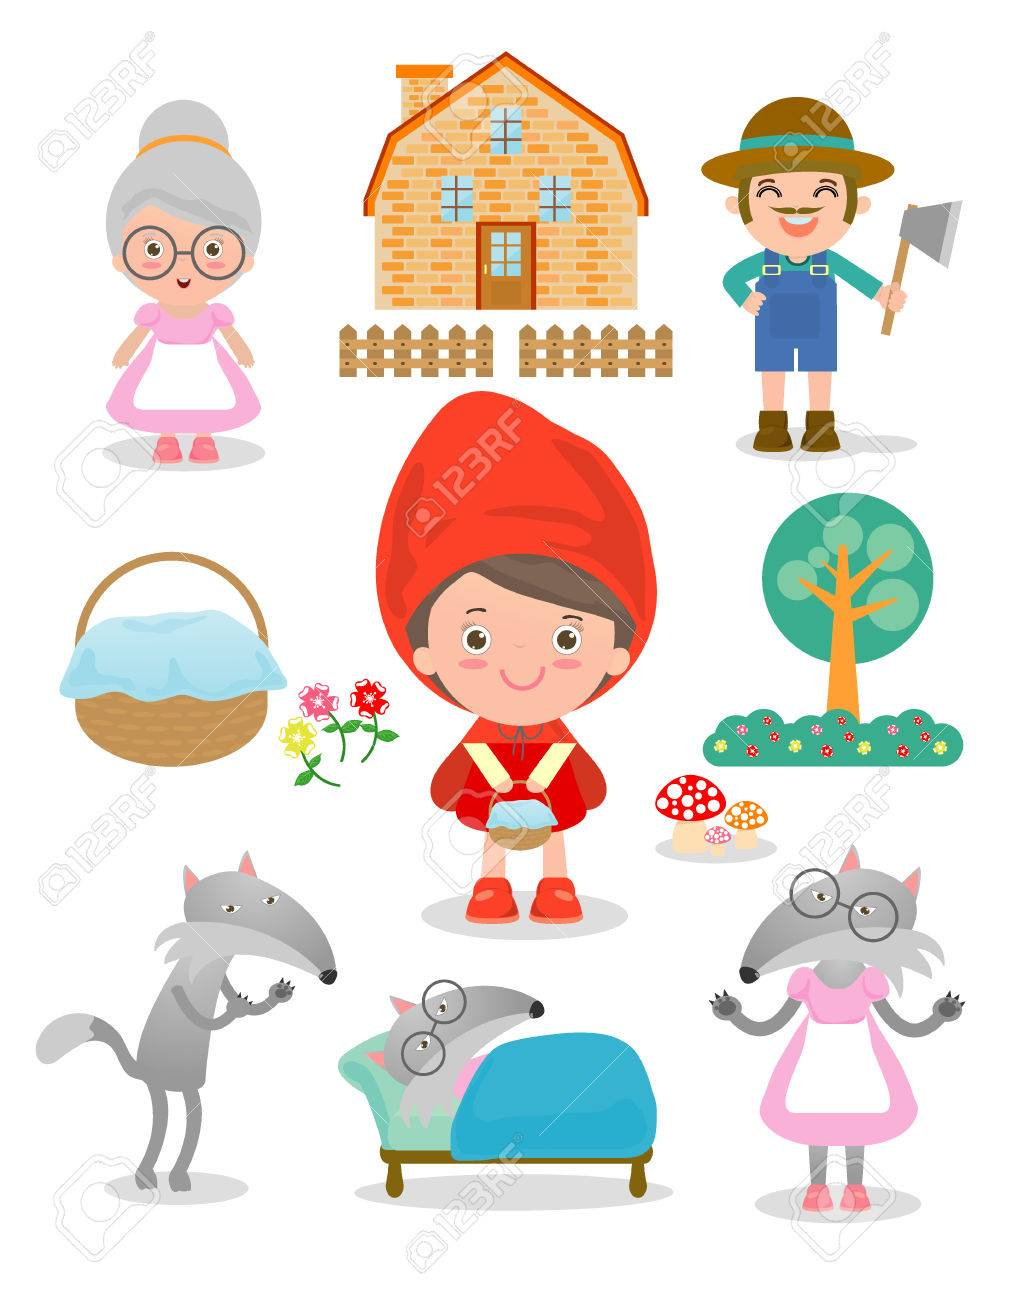 Set Of Characters From Little Red Riding Hood Fairy Tale On White